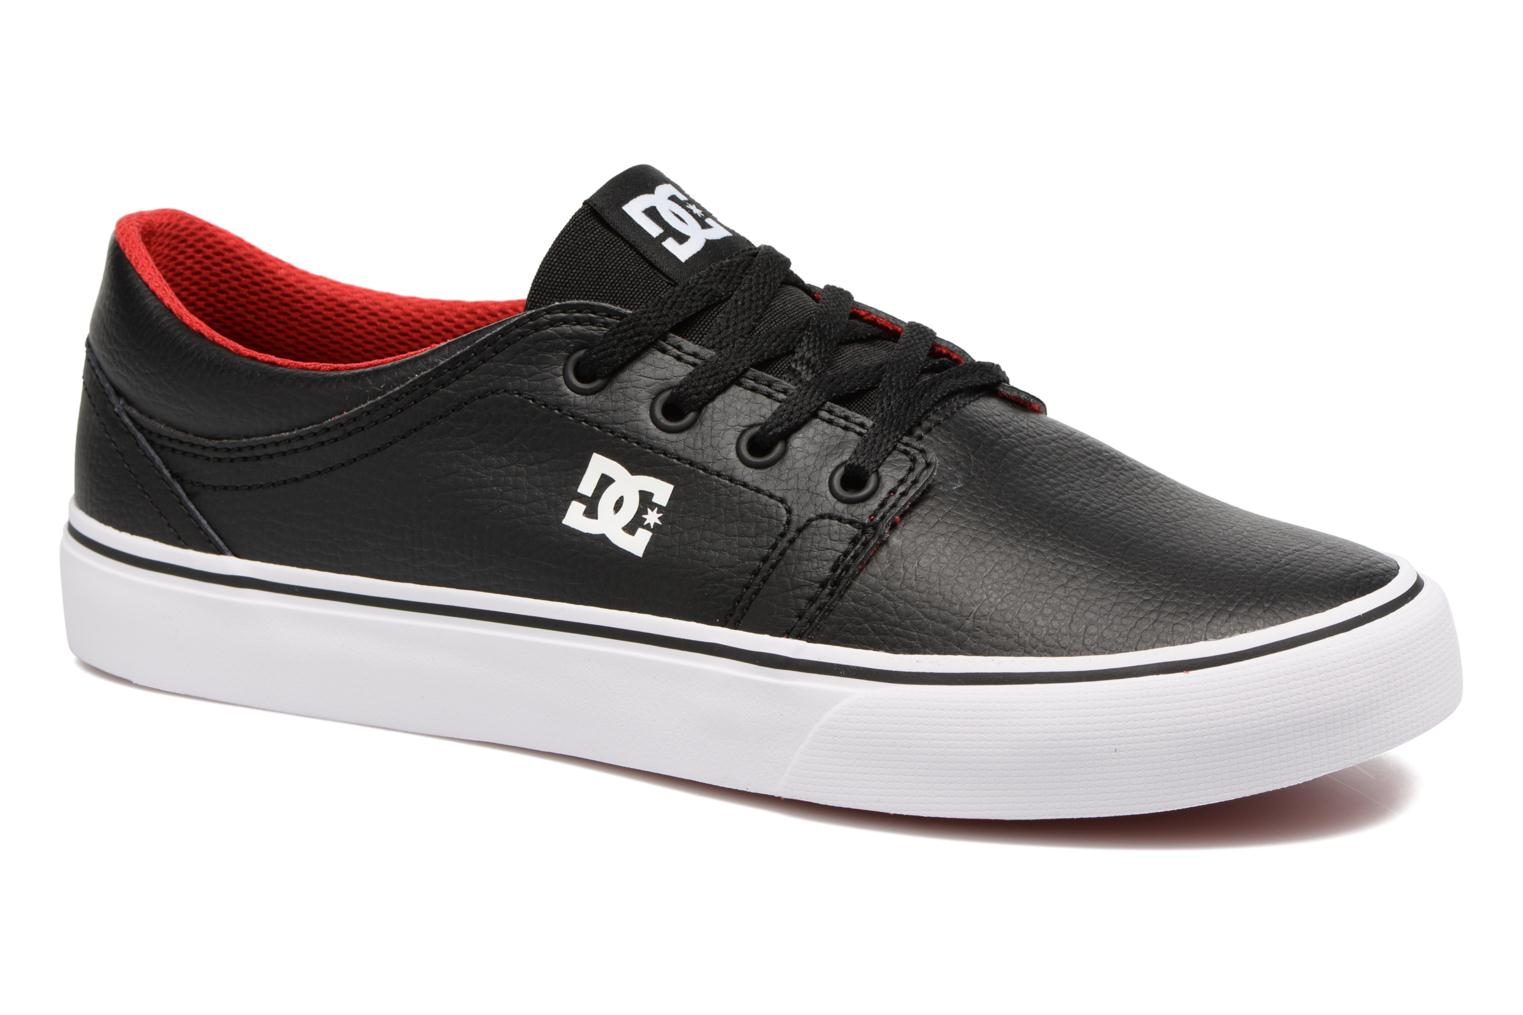 Trase M by DC ShoesRebajas - 20%